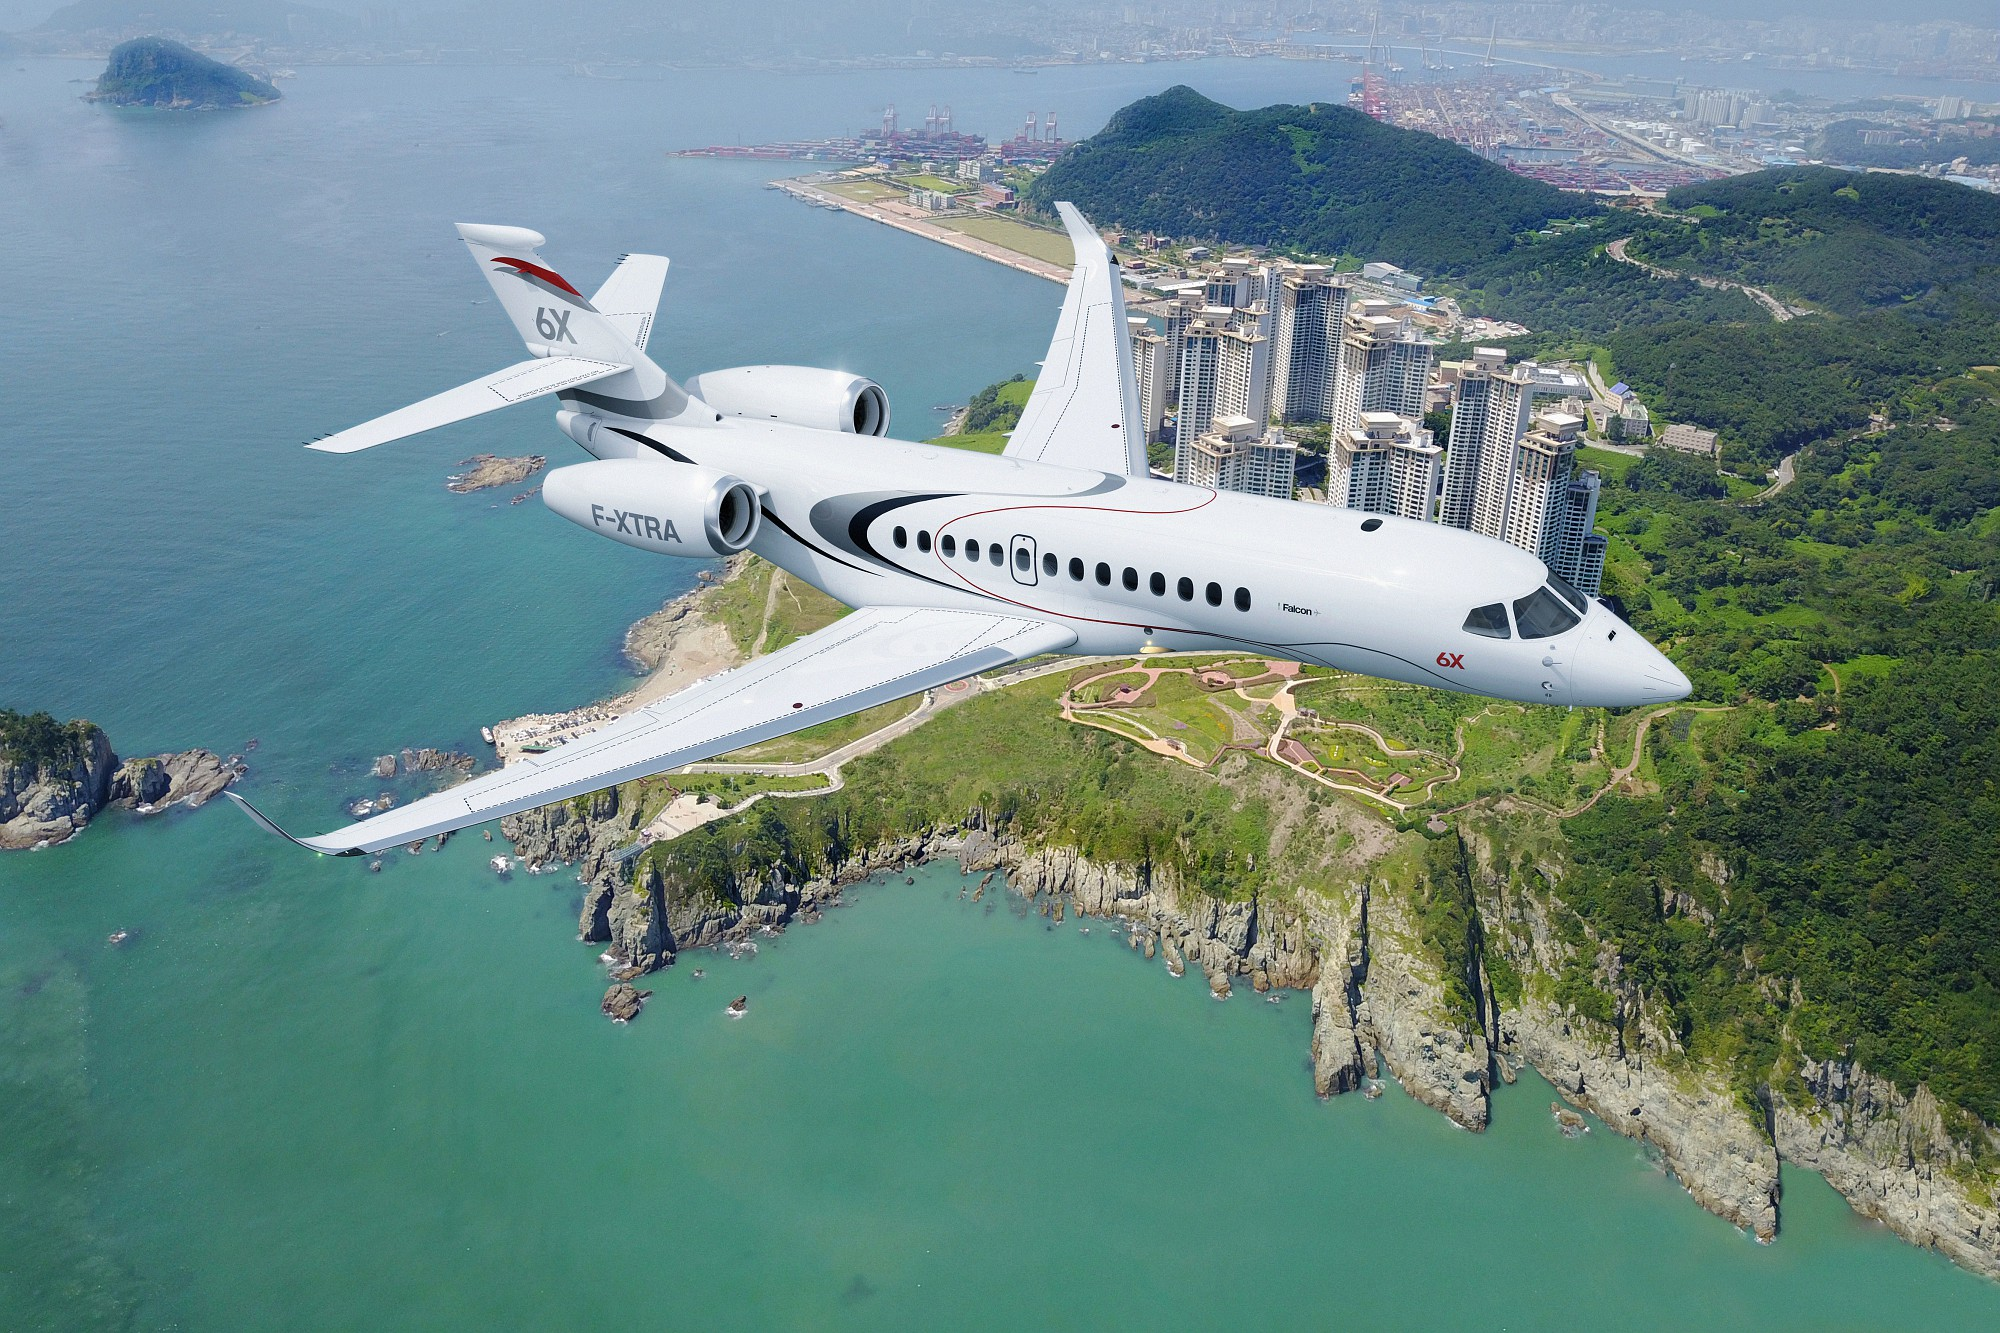 Falcon 6X in flight